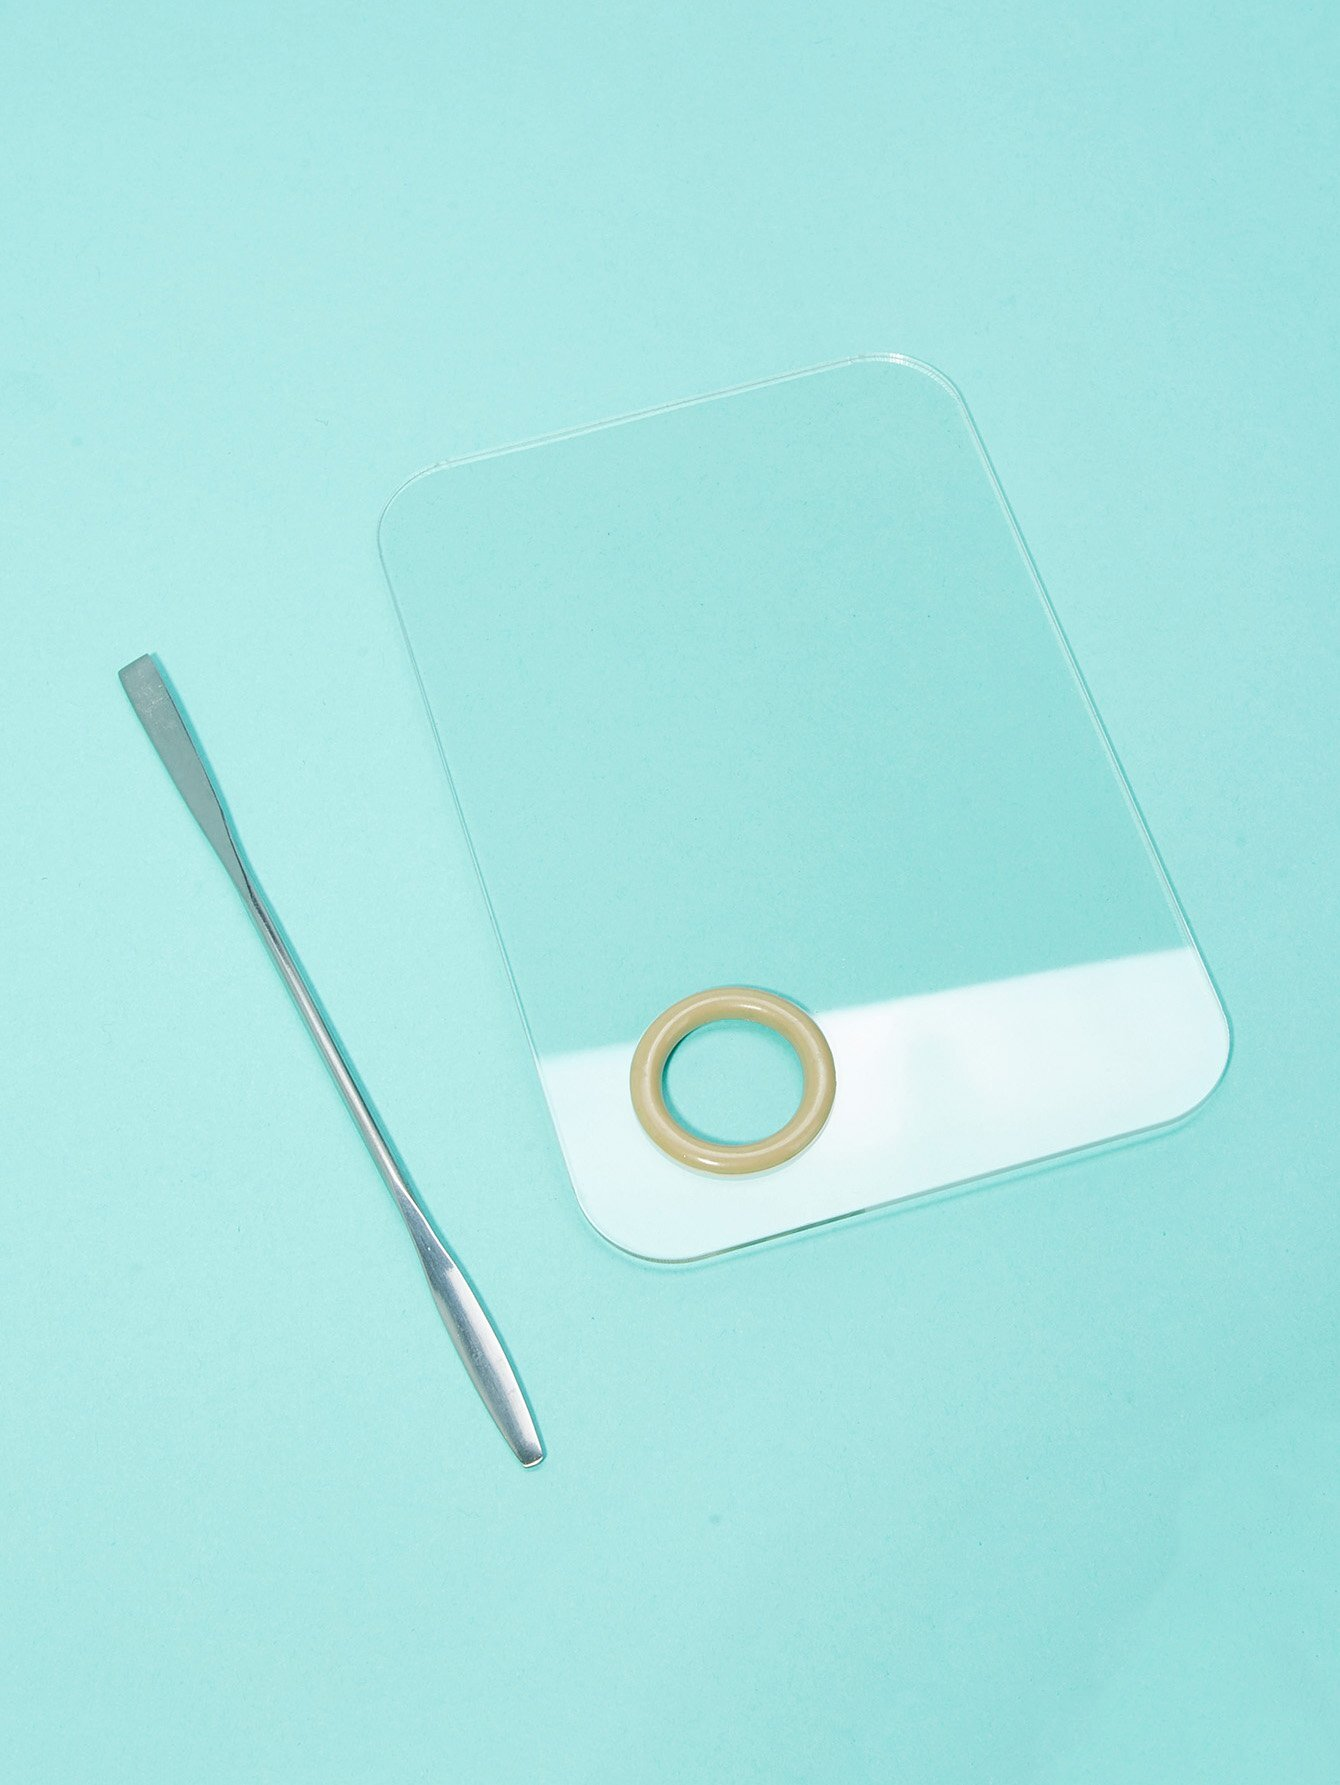 Clear Palette Set 2Pcs clear acrylic a3a4a5a6 sign display paper card label advertising holders horizontal t stands by magnet sucked on desktop 2pcs